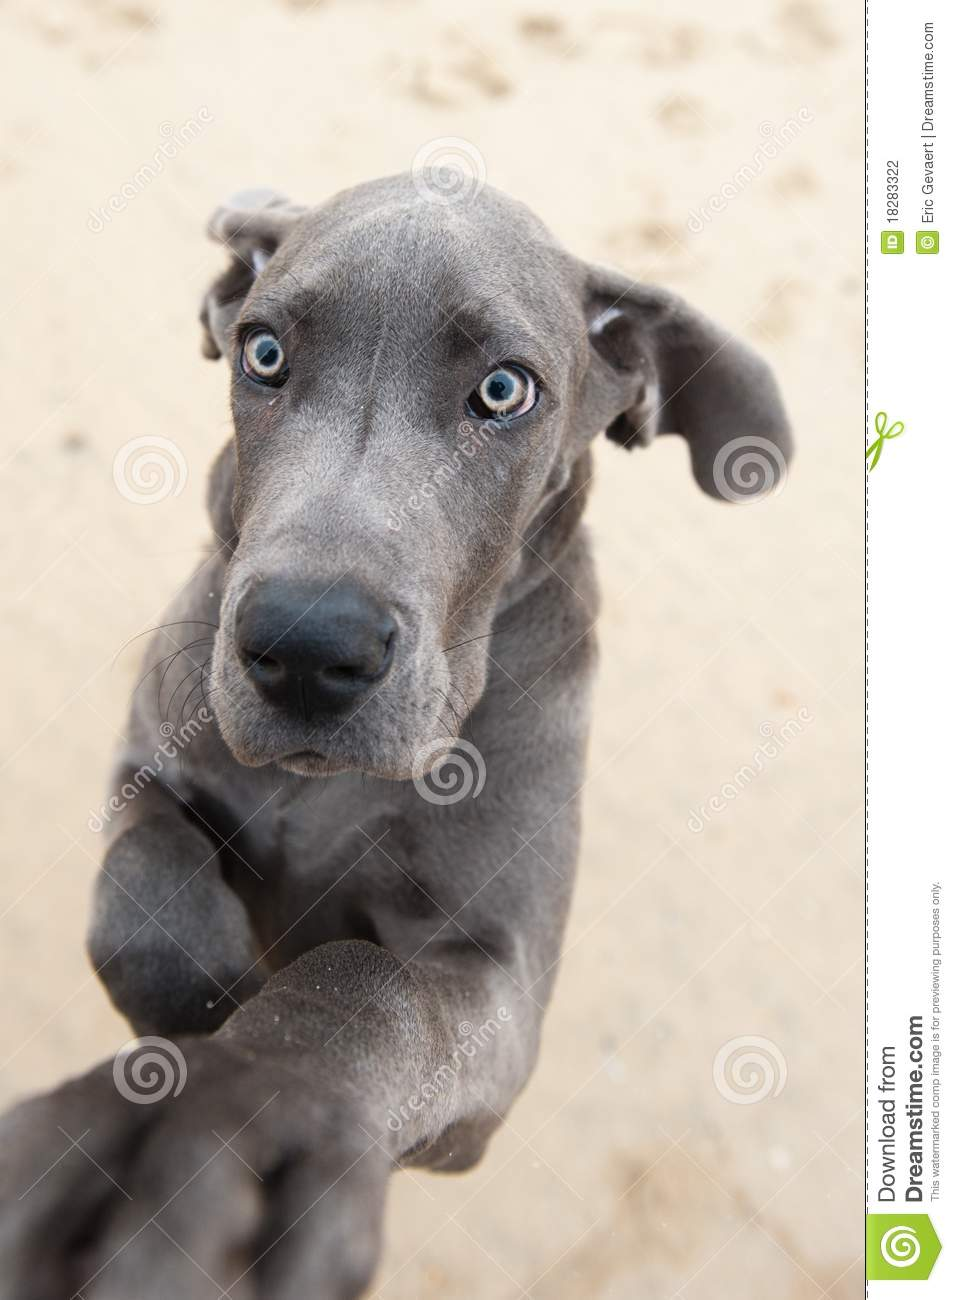 Funny Image Of A Great Dane Puppy Stock Photography ...